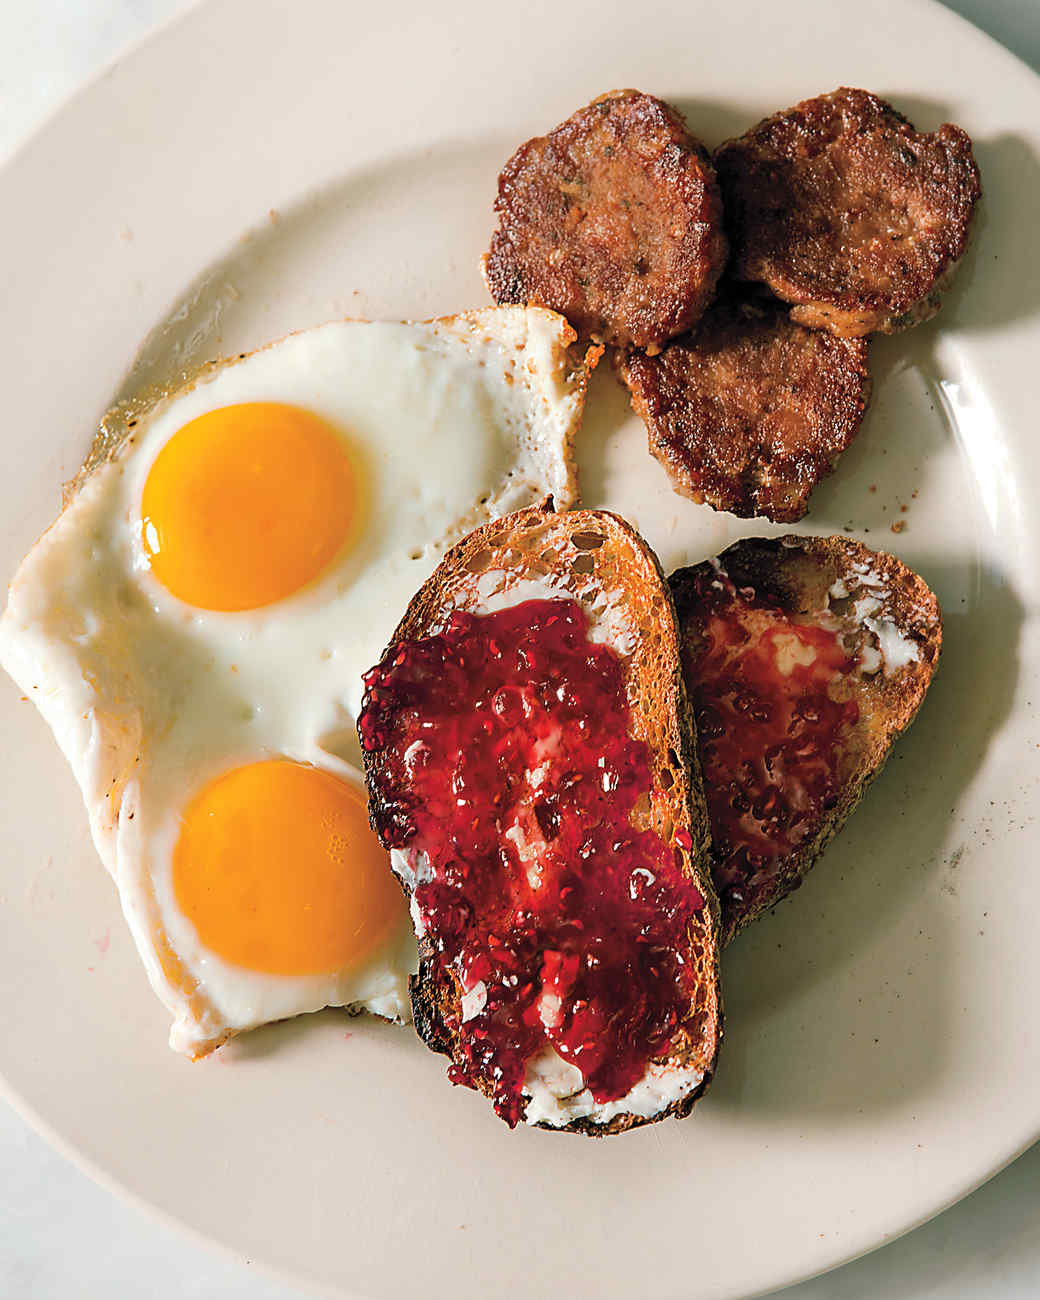 Breakfast Sausage Patties with Fried Eggs